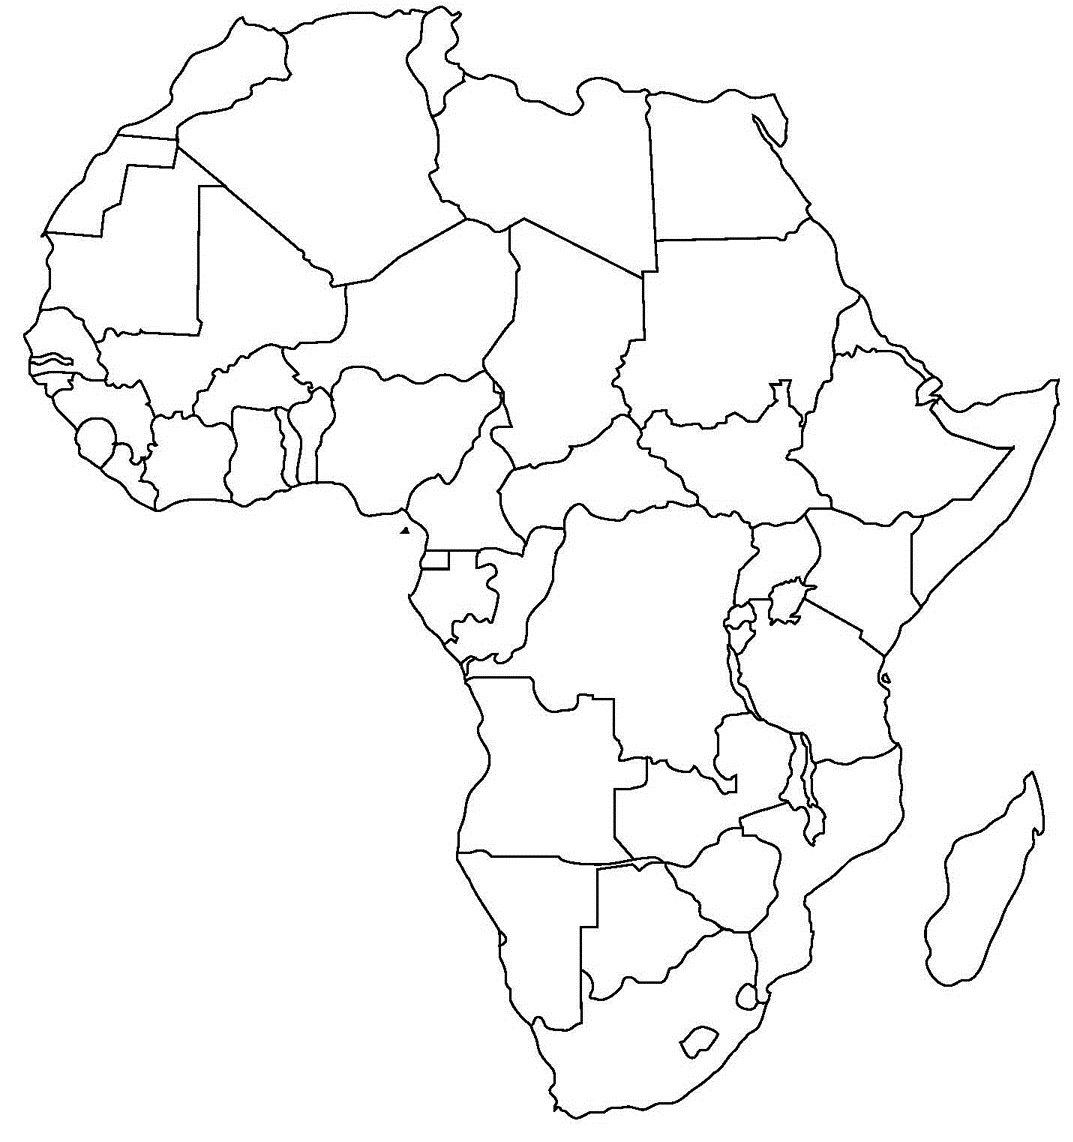 Africa-outline-map-credit-Bruce-Jones-Design-Inc.jpg